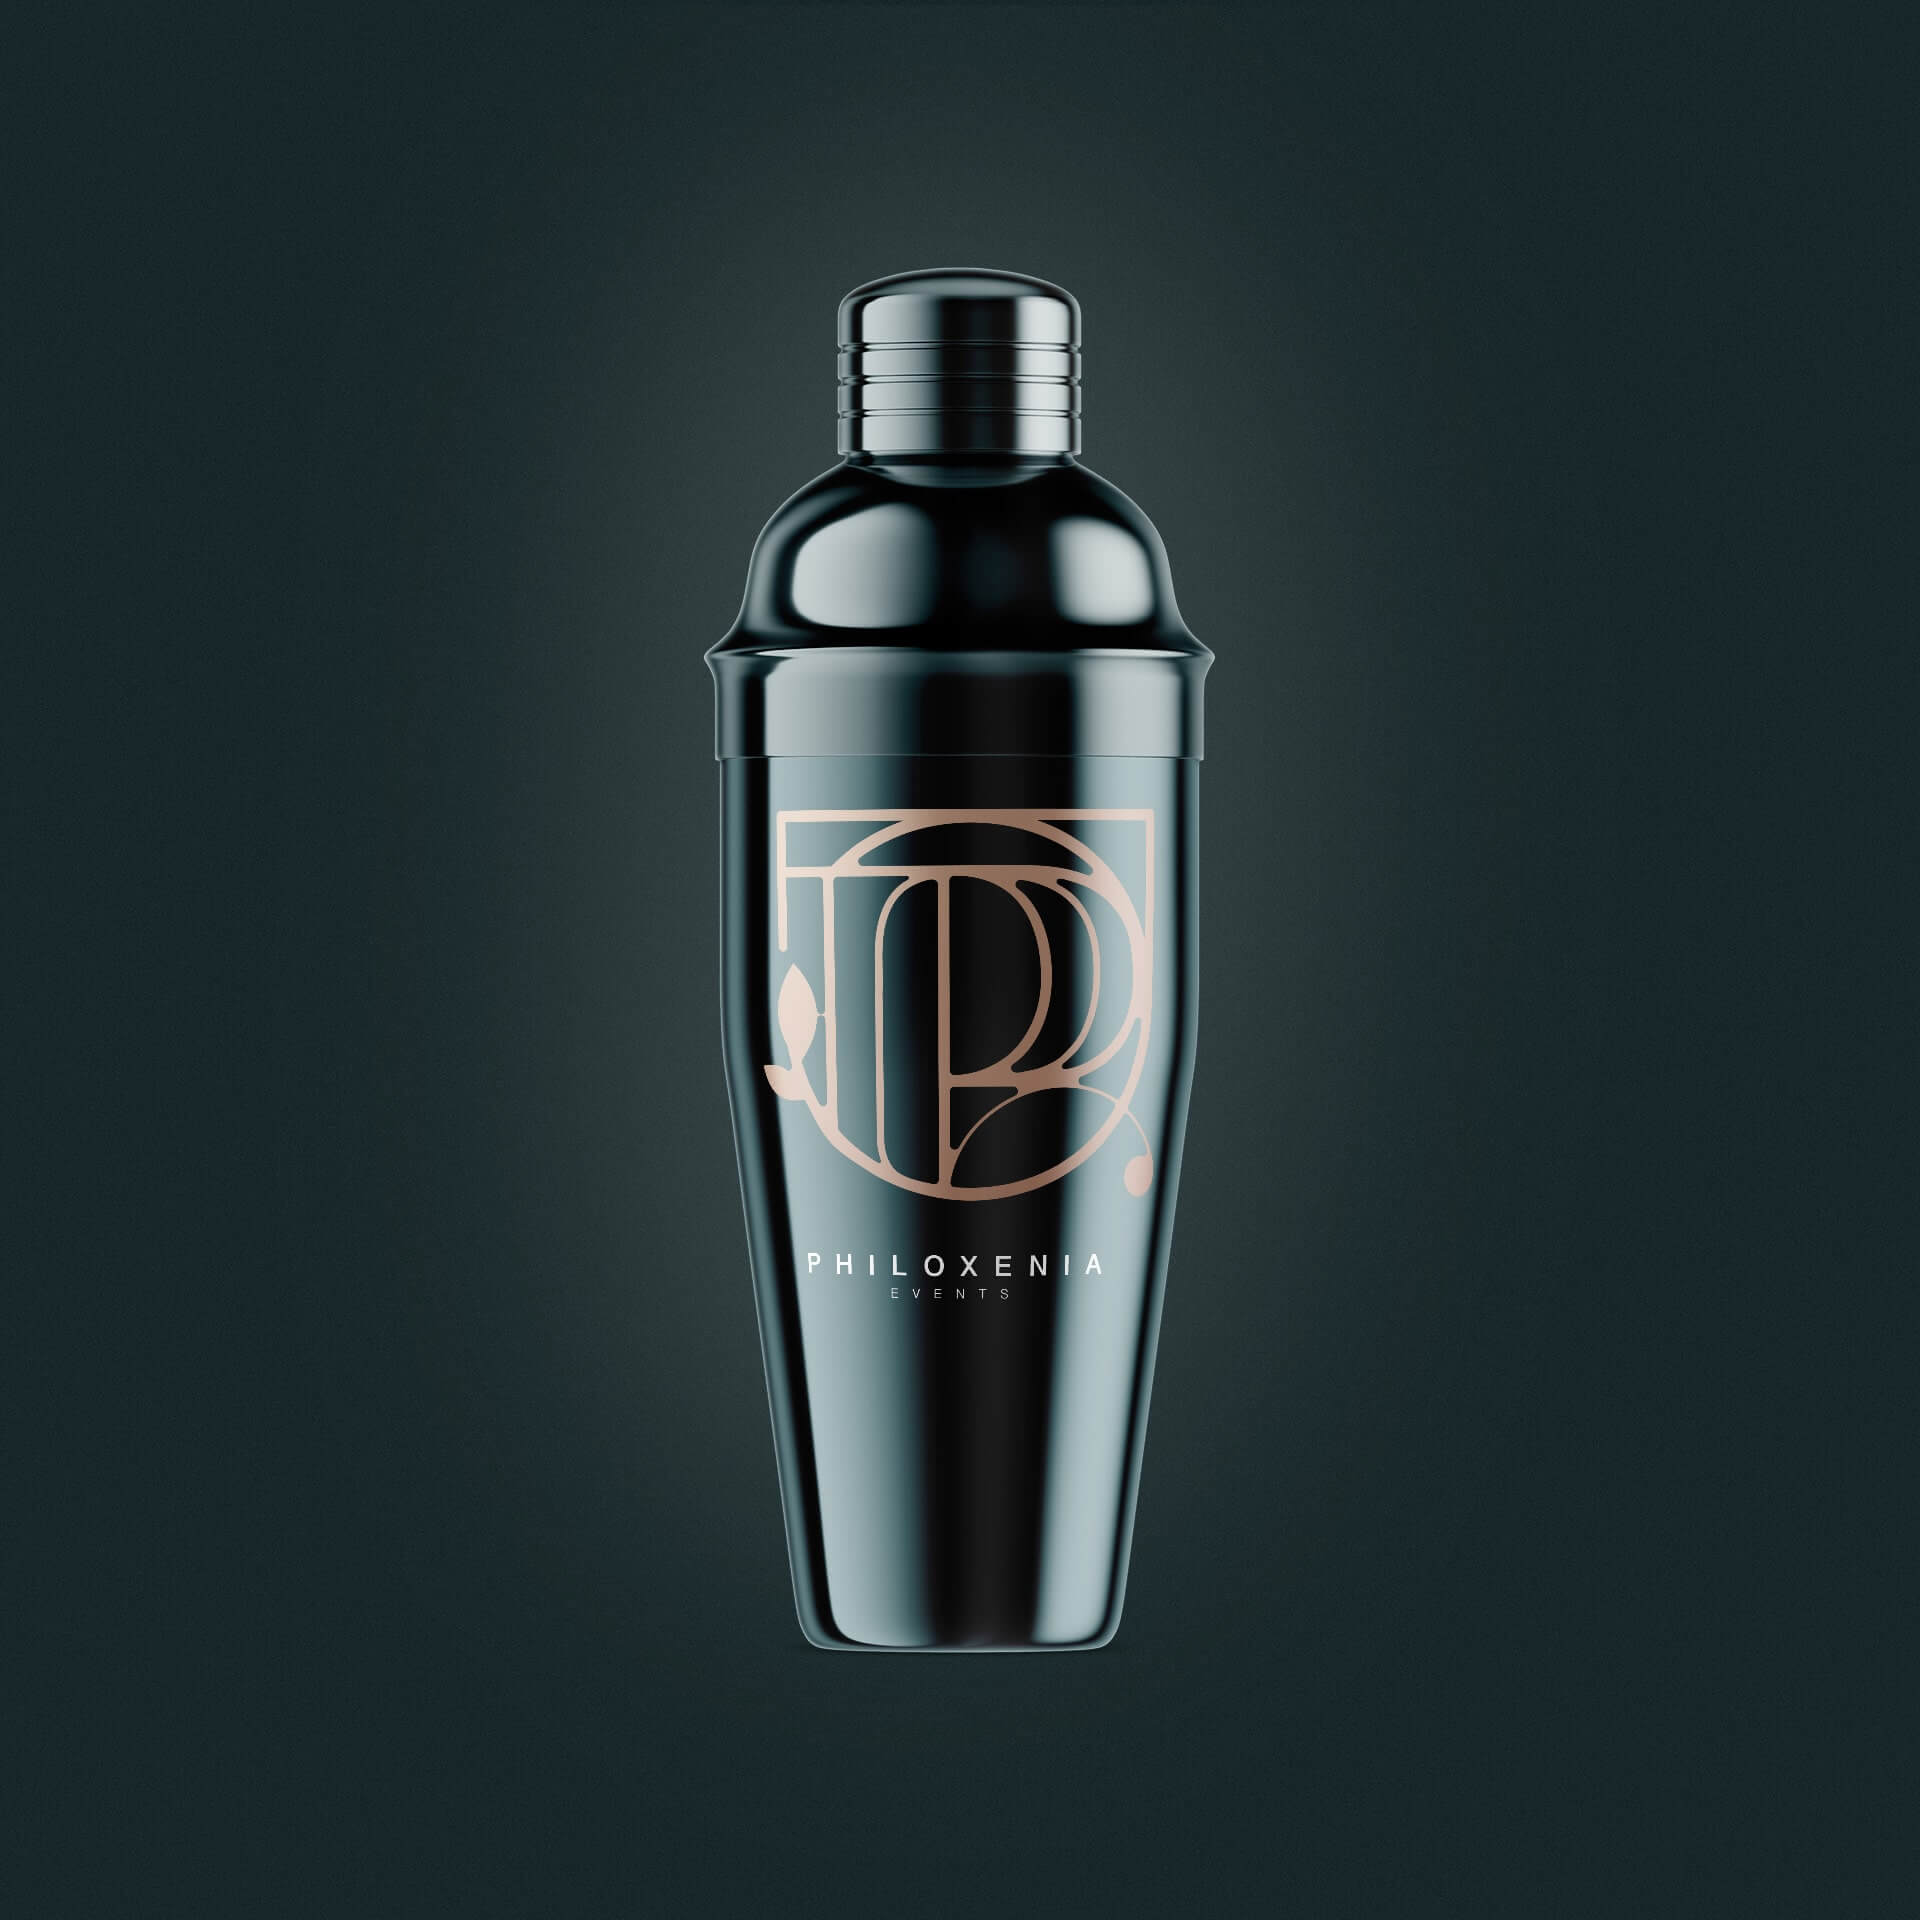 cocktail shaker design for Philoxenia